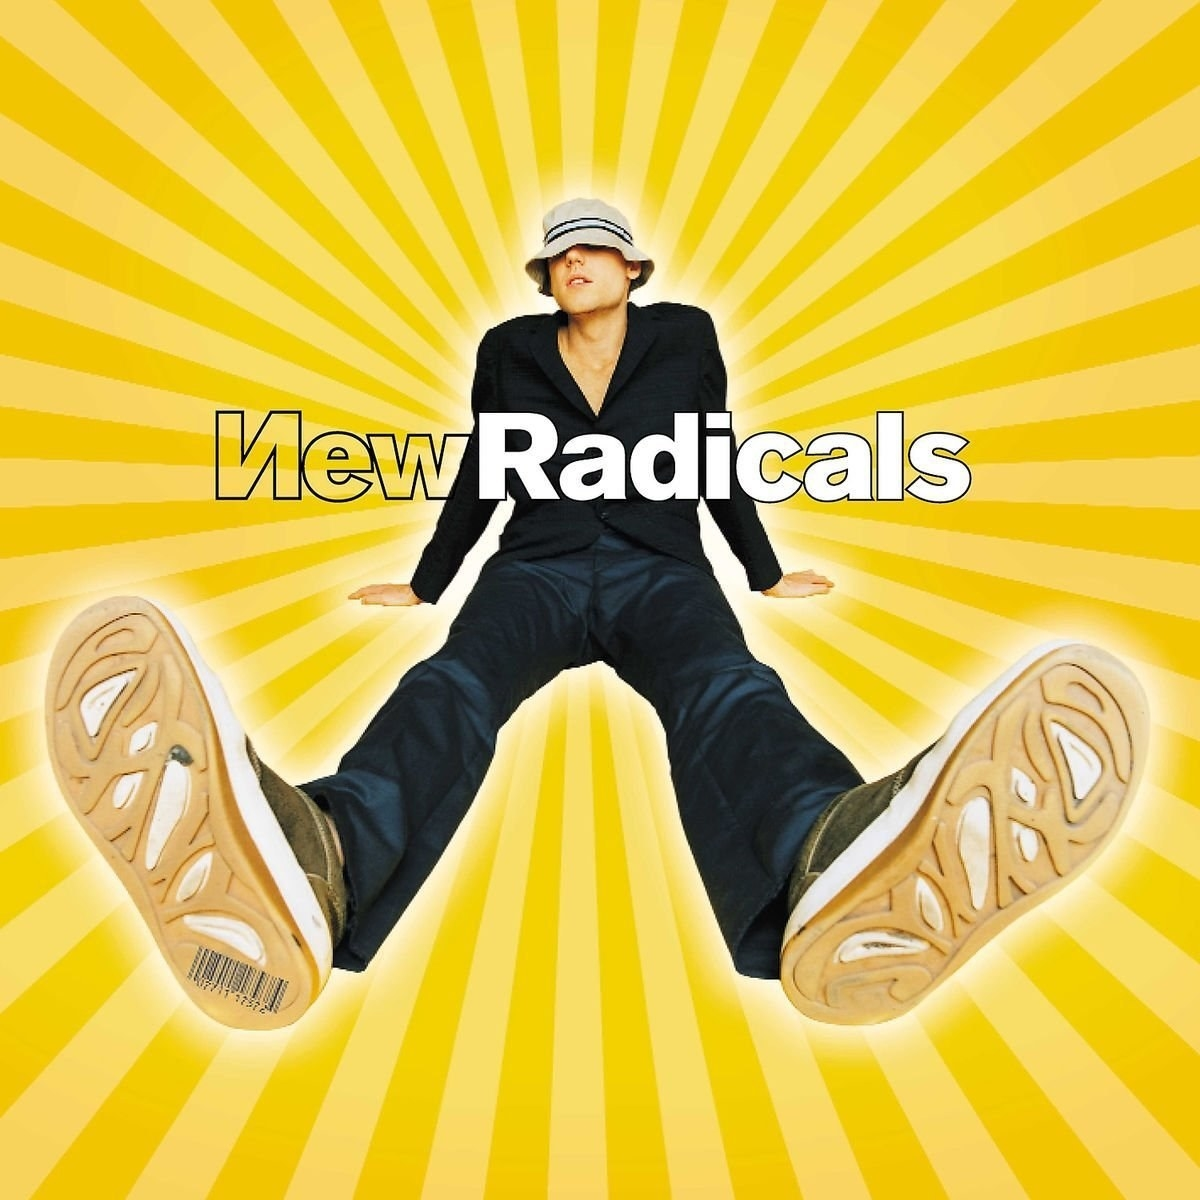 The New Radicals album cover featuring the lead singer wearing a bucket hat and sitting down with a yellow burst behind him